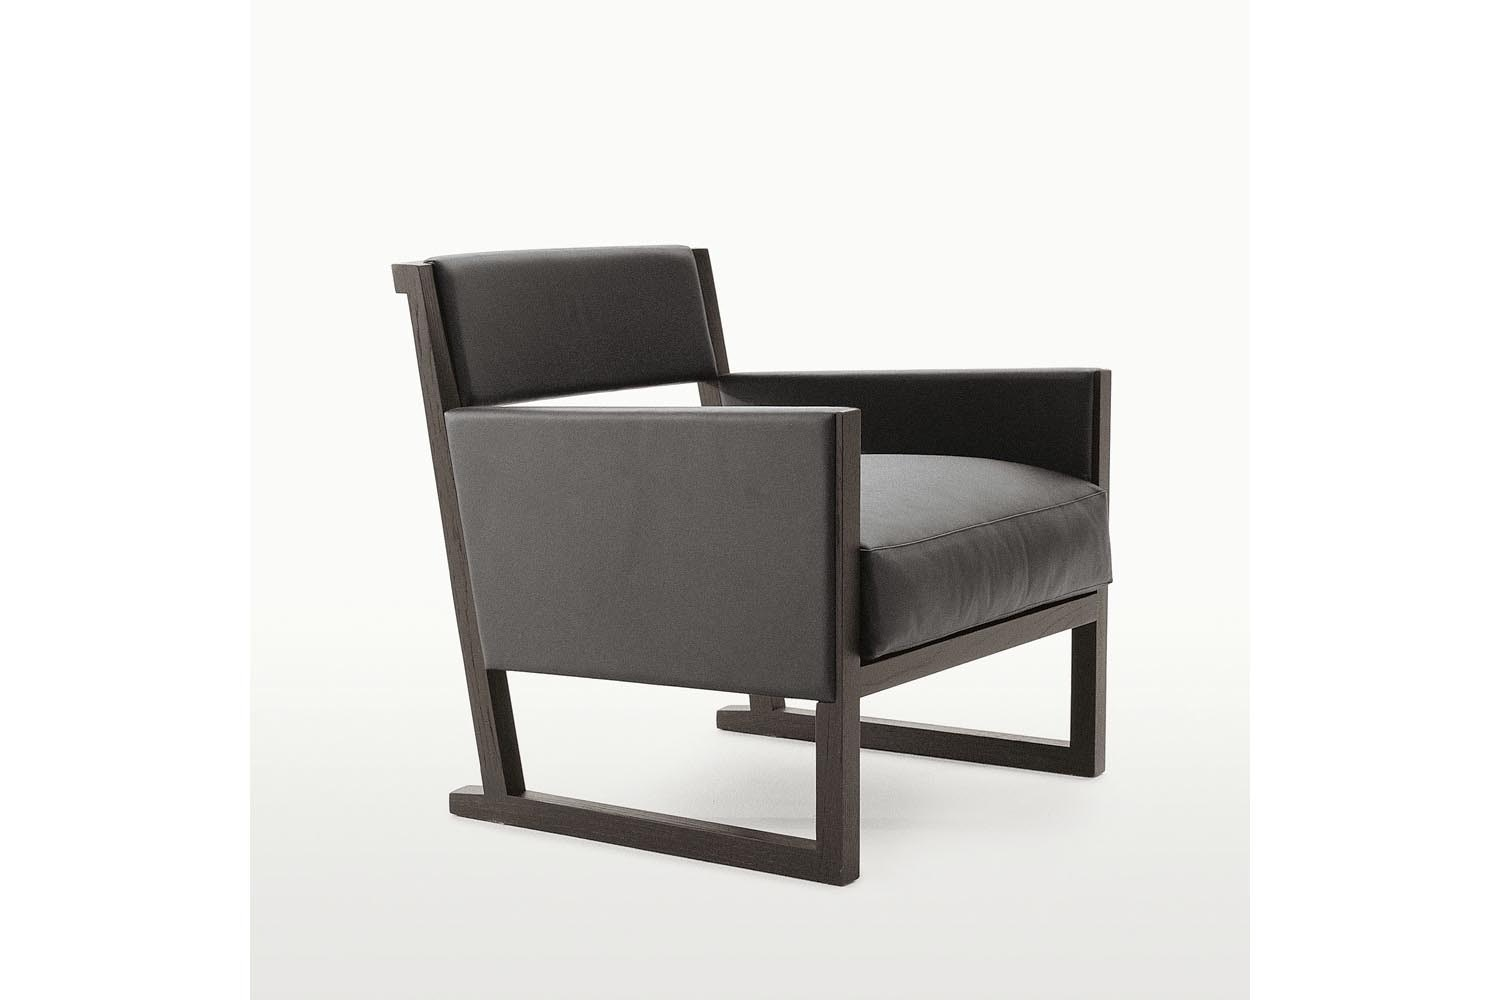 Musa Armchair by Antonio Citterio for Maxalto